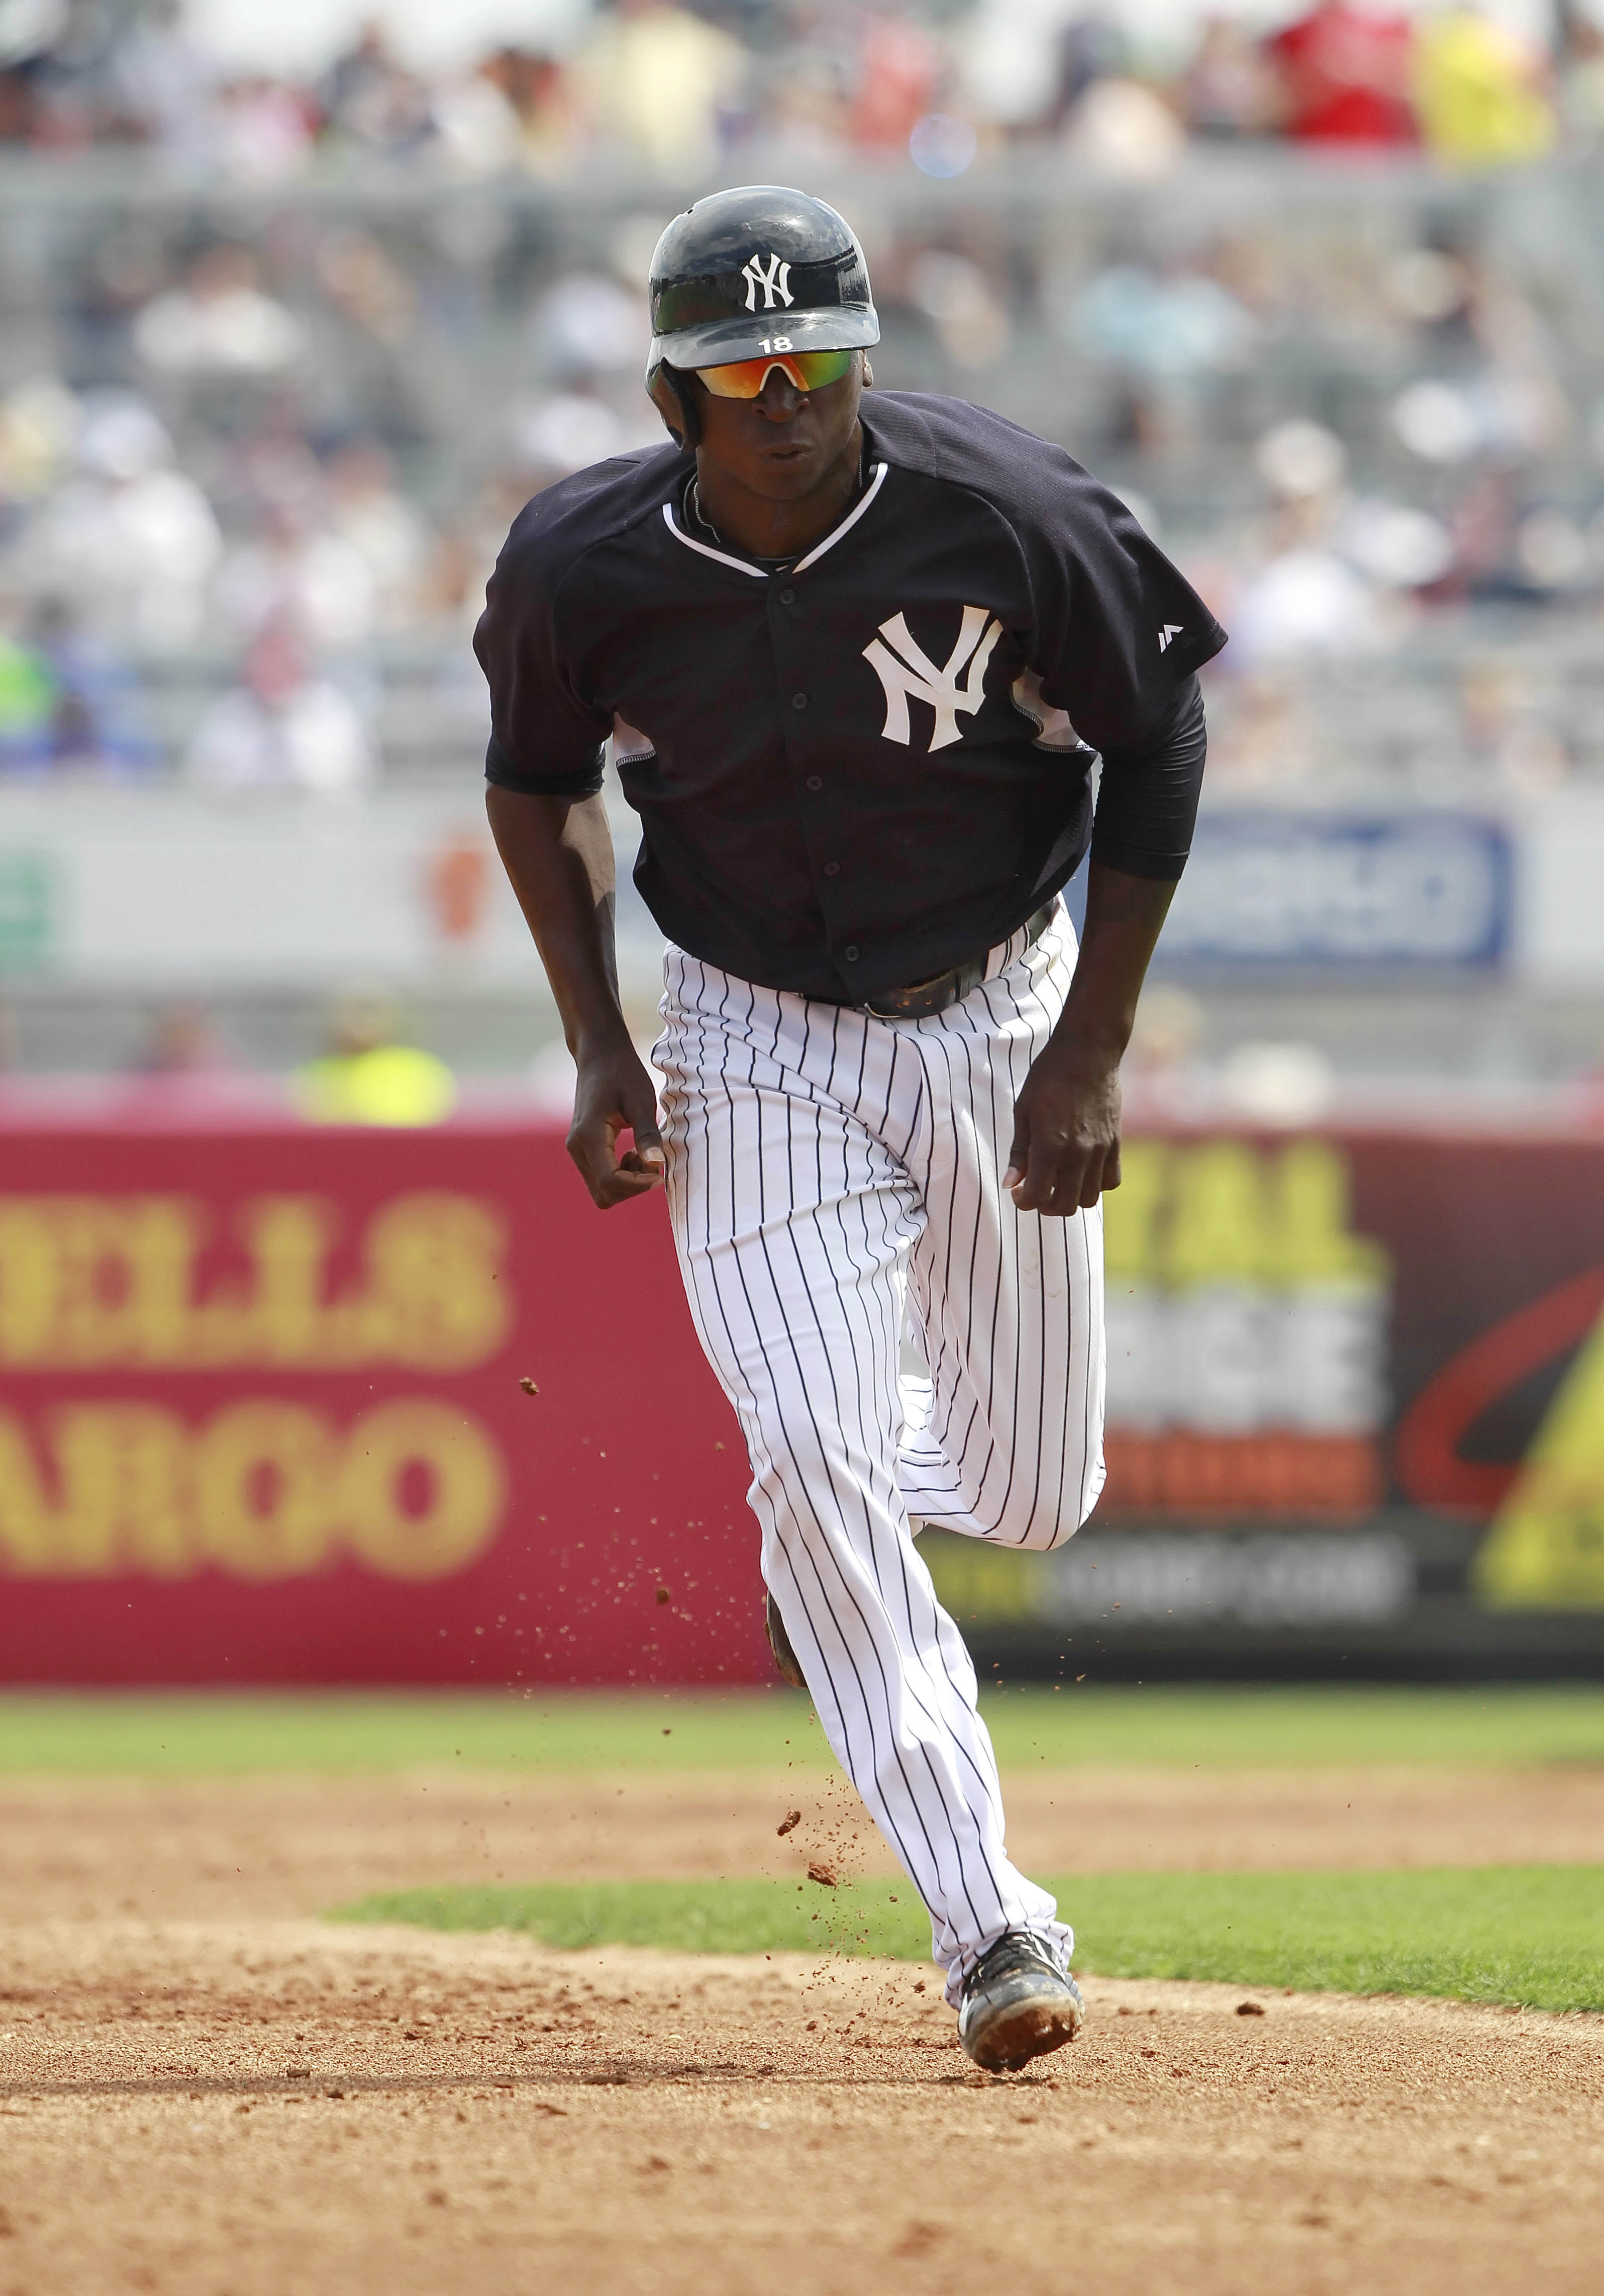 You were expecting Jeter perhaps?